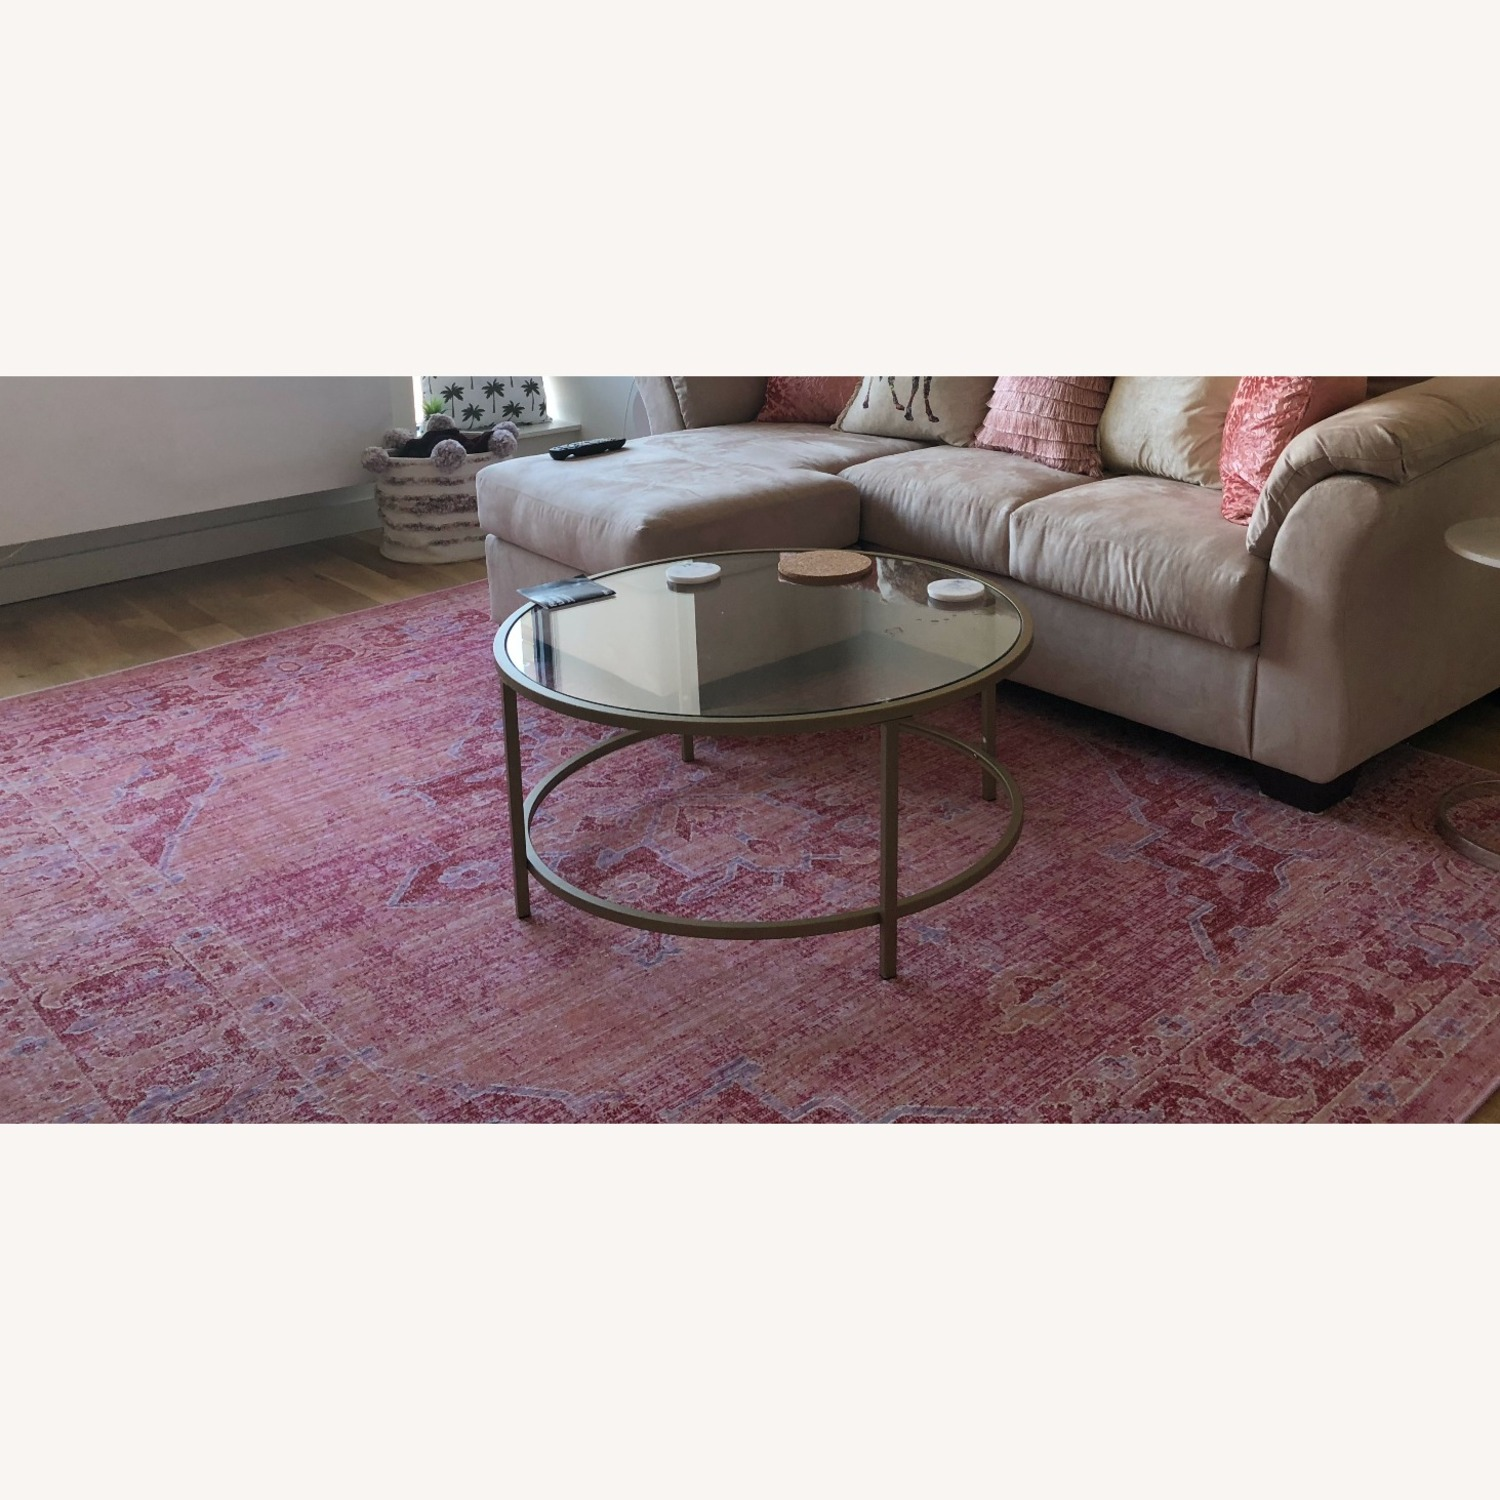 Safavieh 8x10 Pink and Multi-Color Area Rug - image-2